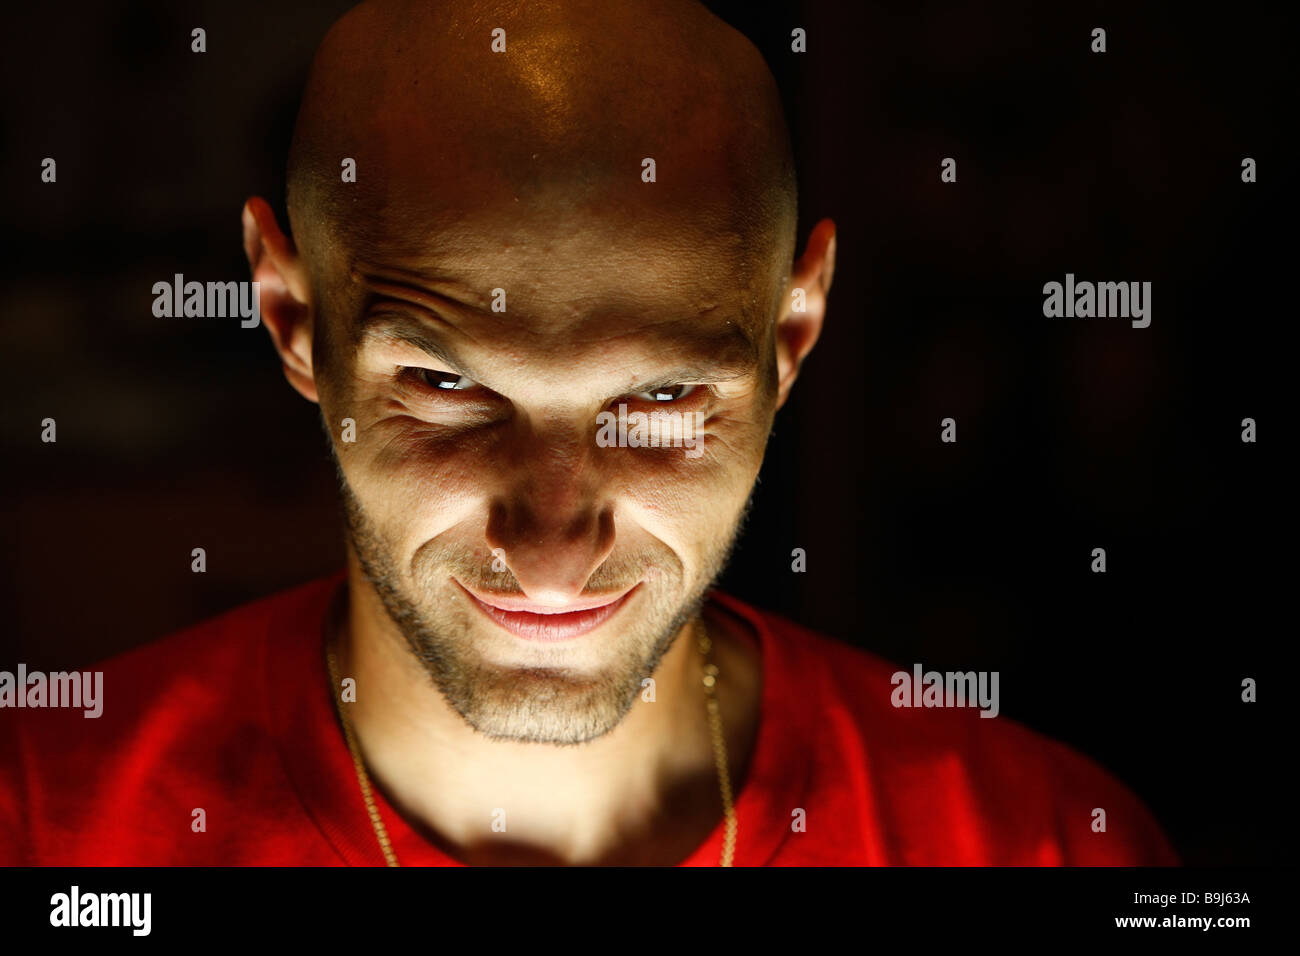 terrifying looking man with a smirk oh his face looking at the camera - Stock Image